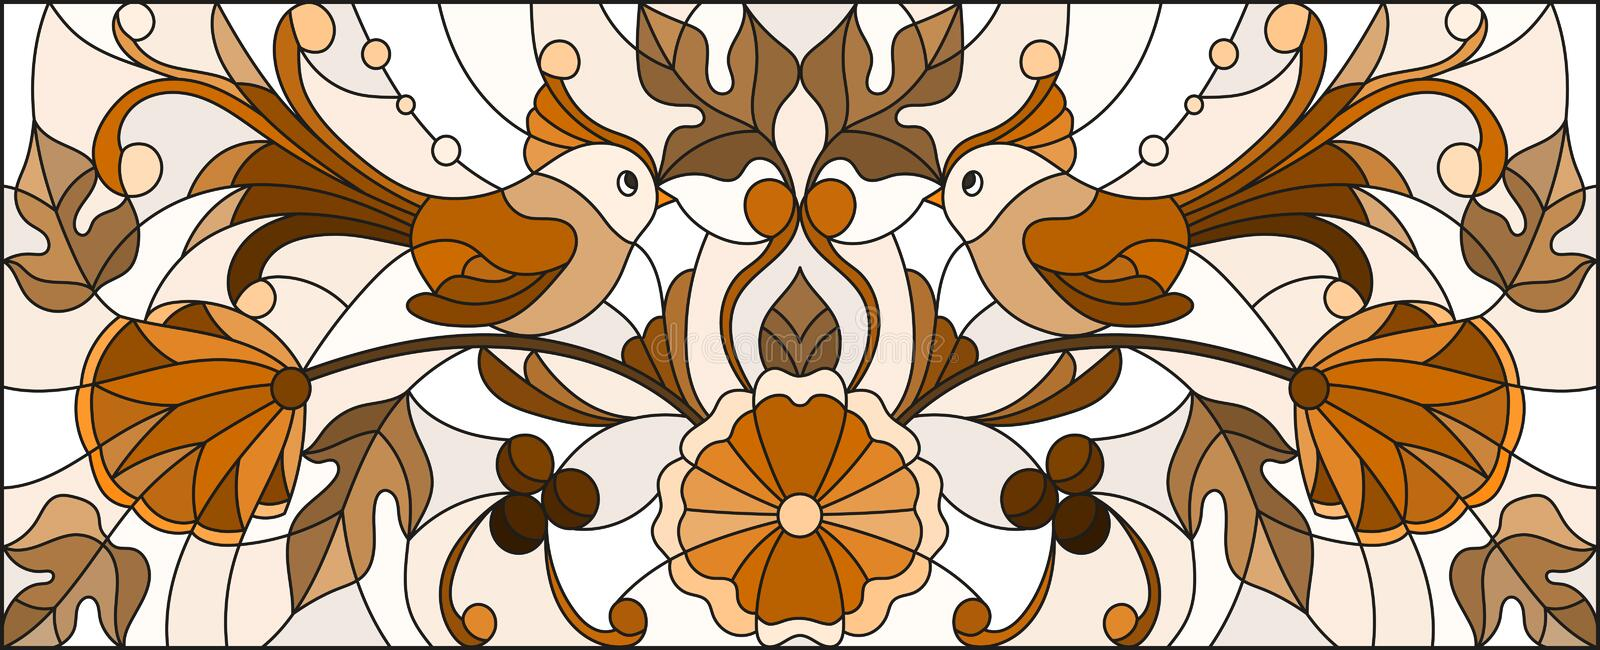 Stained glass illustration with a pair of abstract birds , flowers and patterns ,brown tone , horizontal image vector illustration